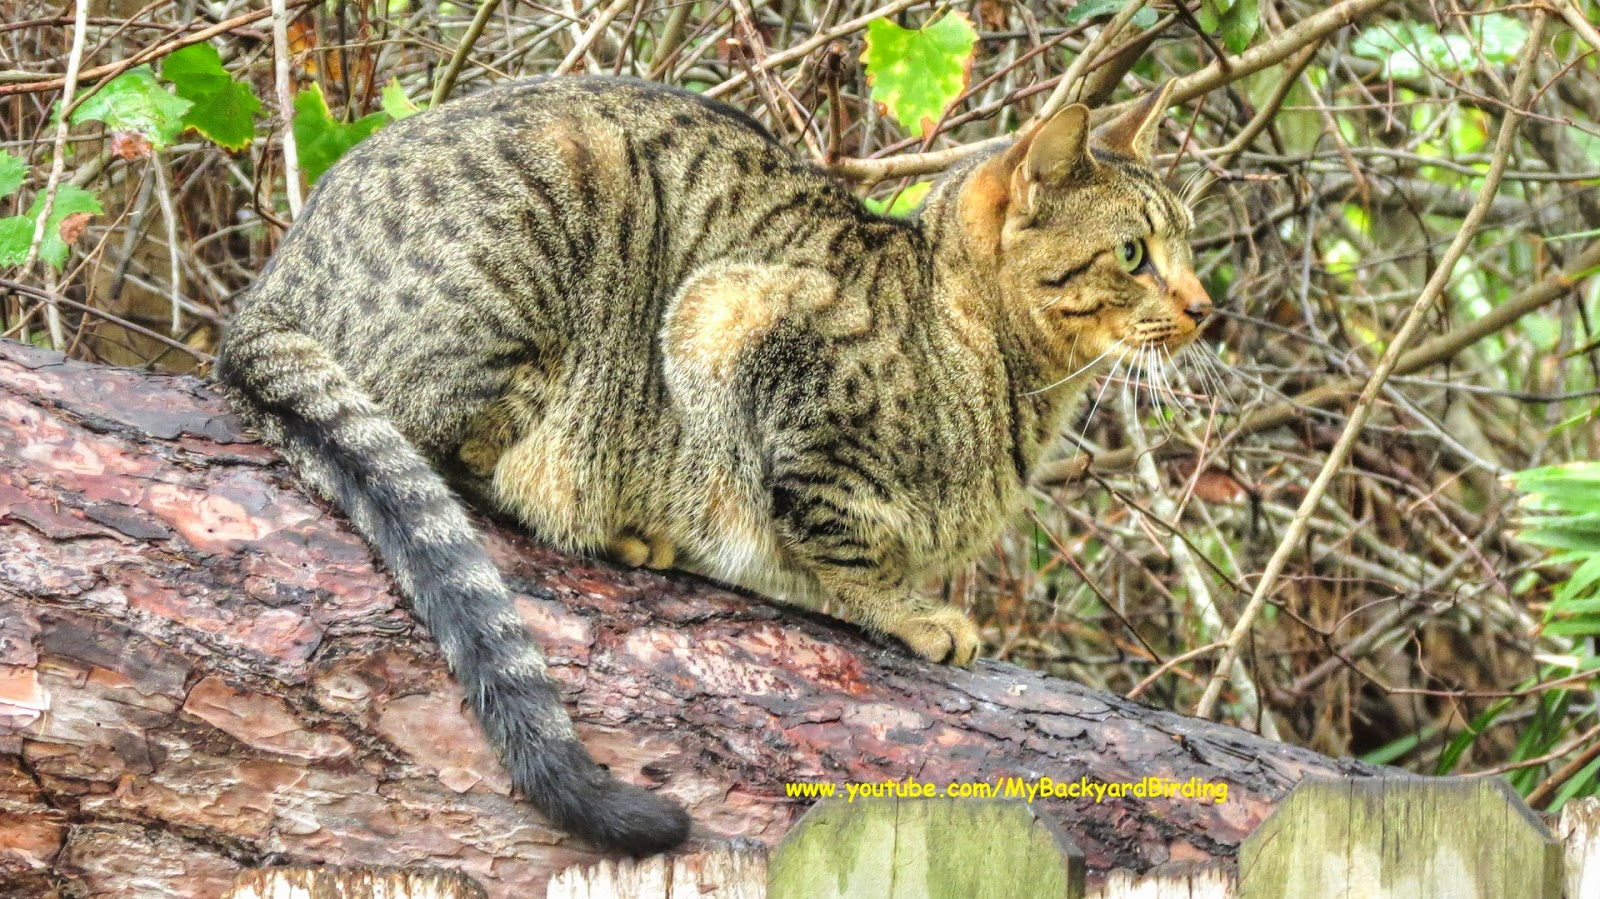 Feral Tabby Cat in the Woods - Amazing Cat Camouflage